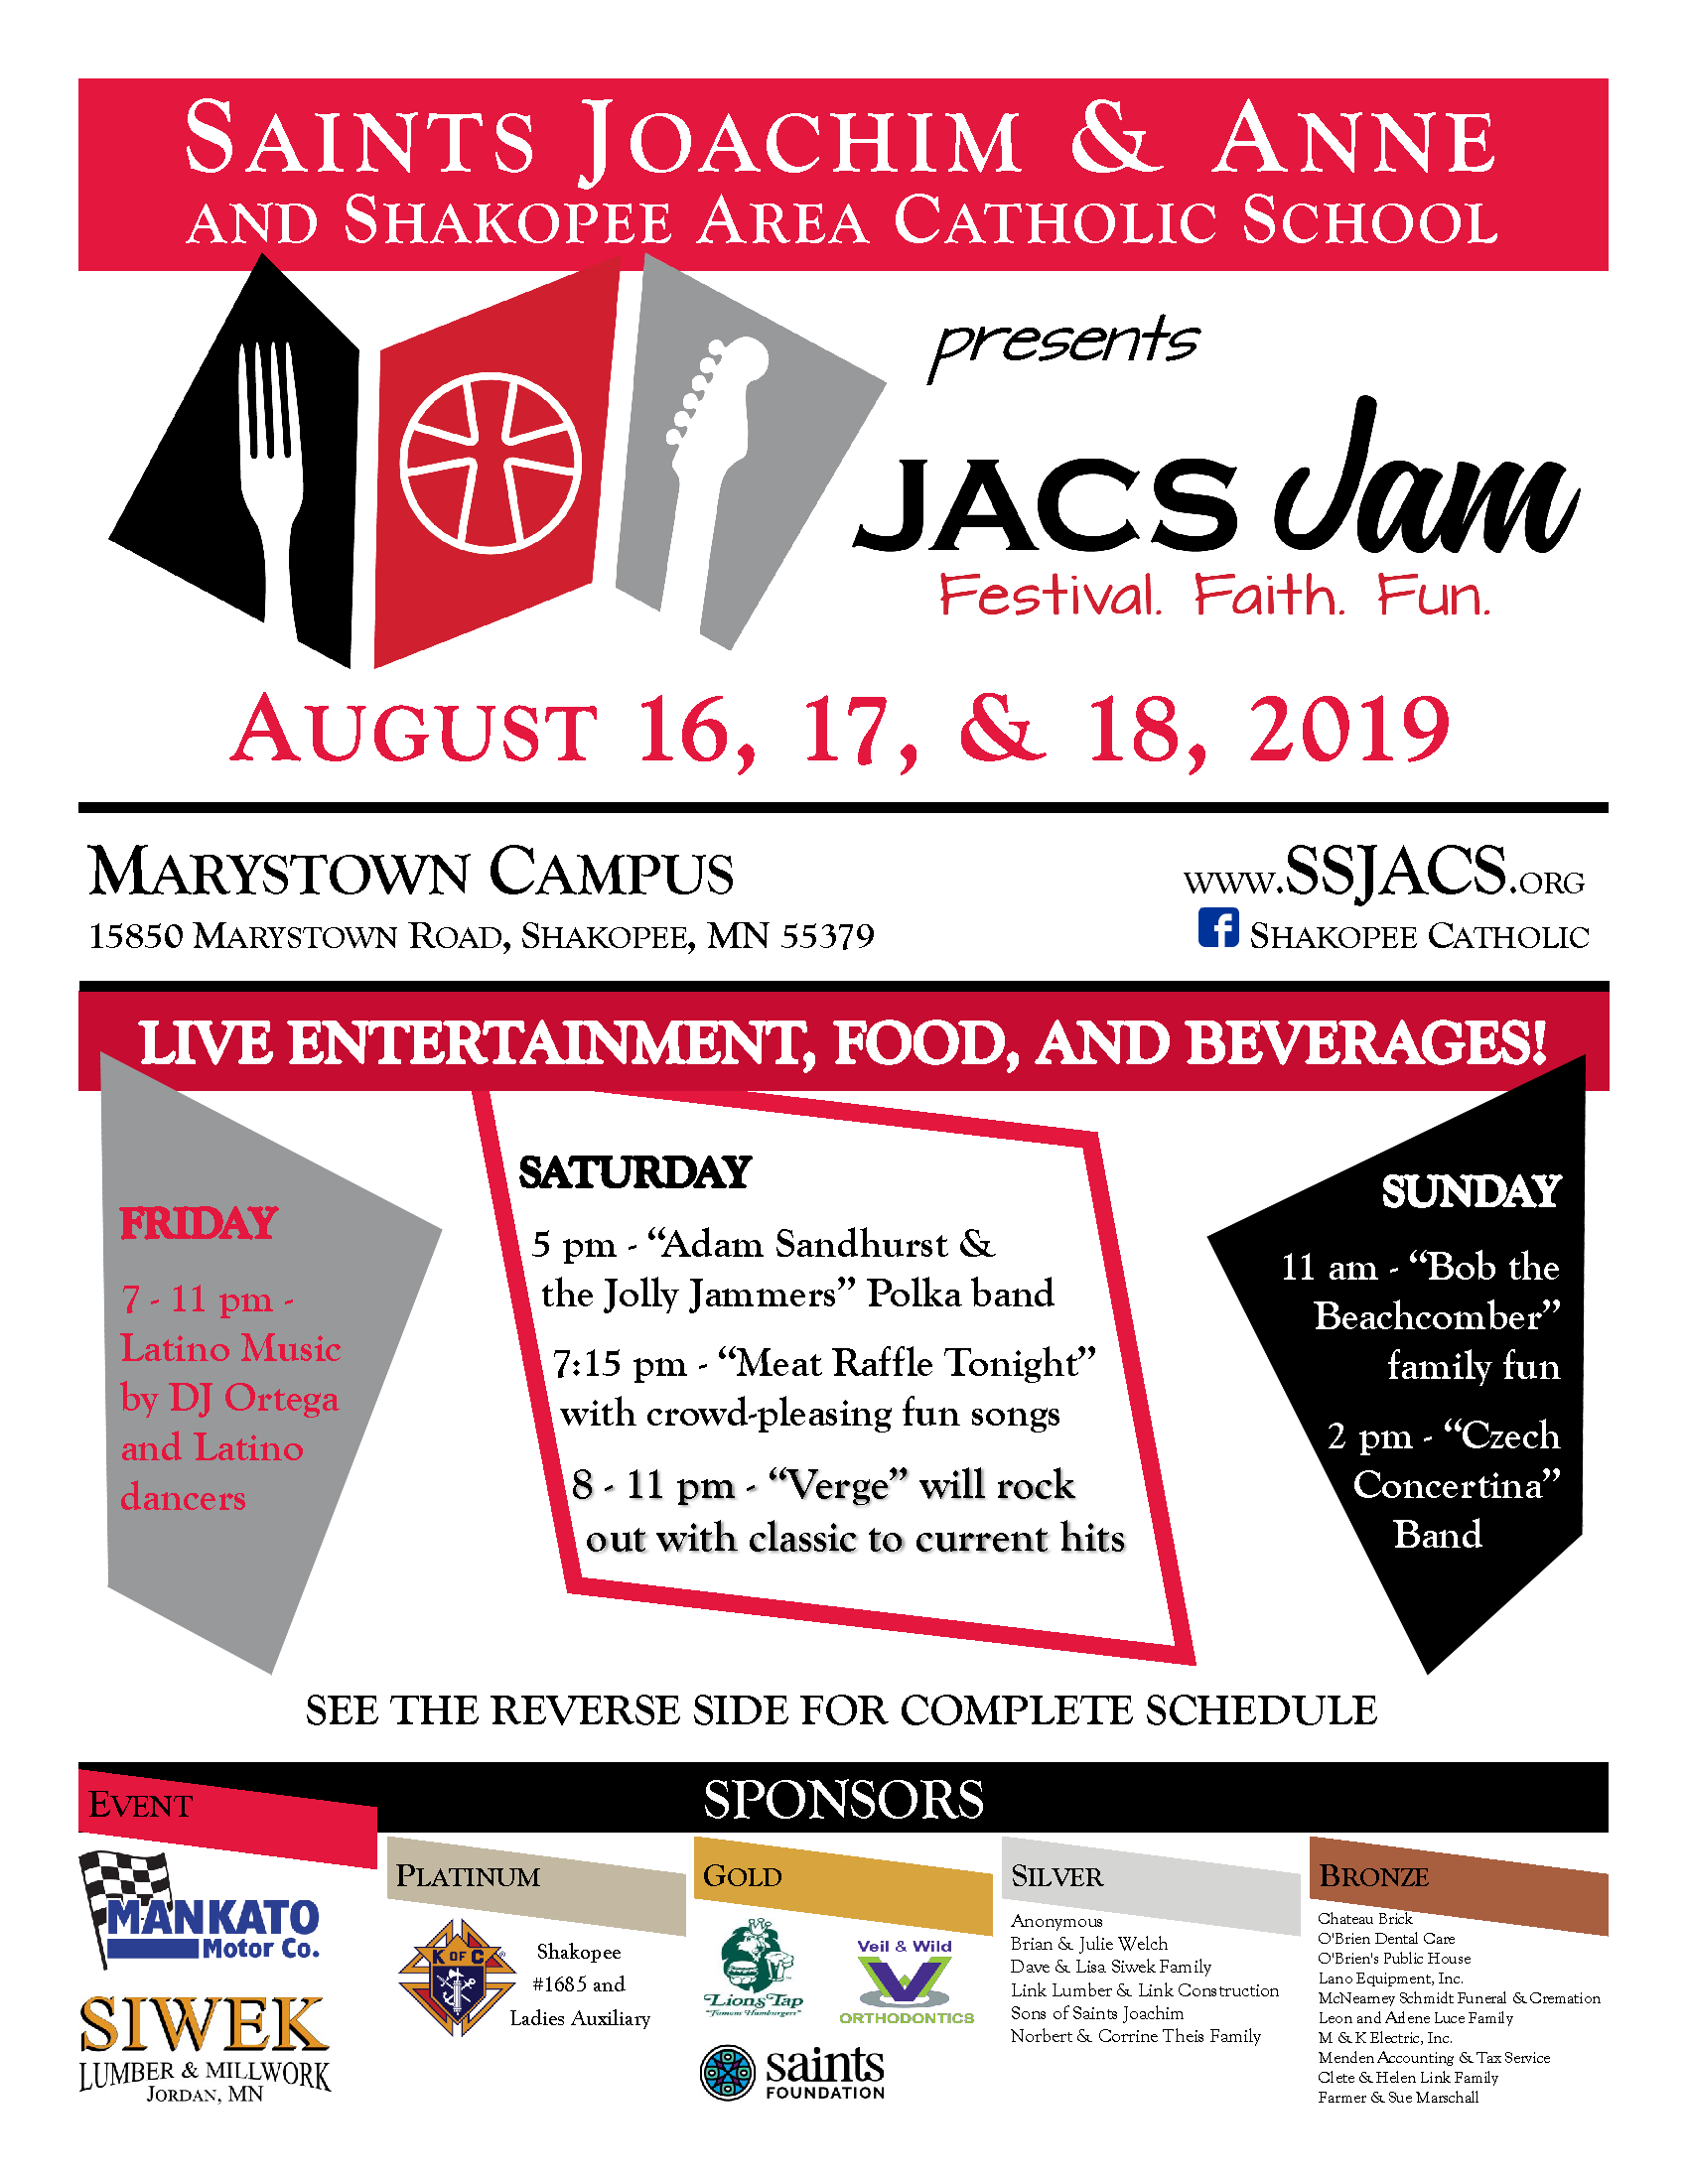 2019 JACS JAM poster - 8.5 x 11 - double sided_Page_1.png